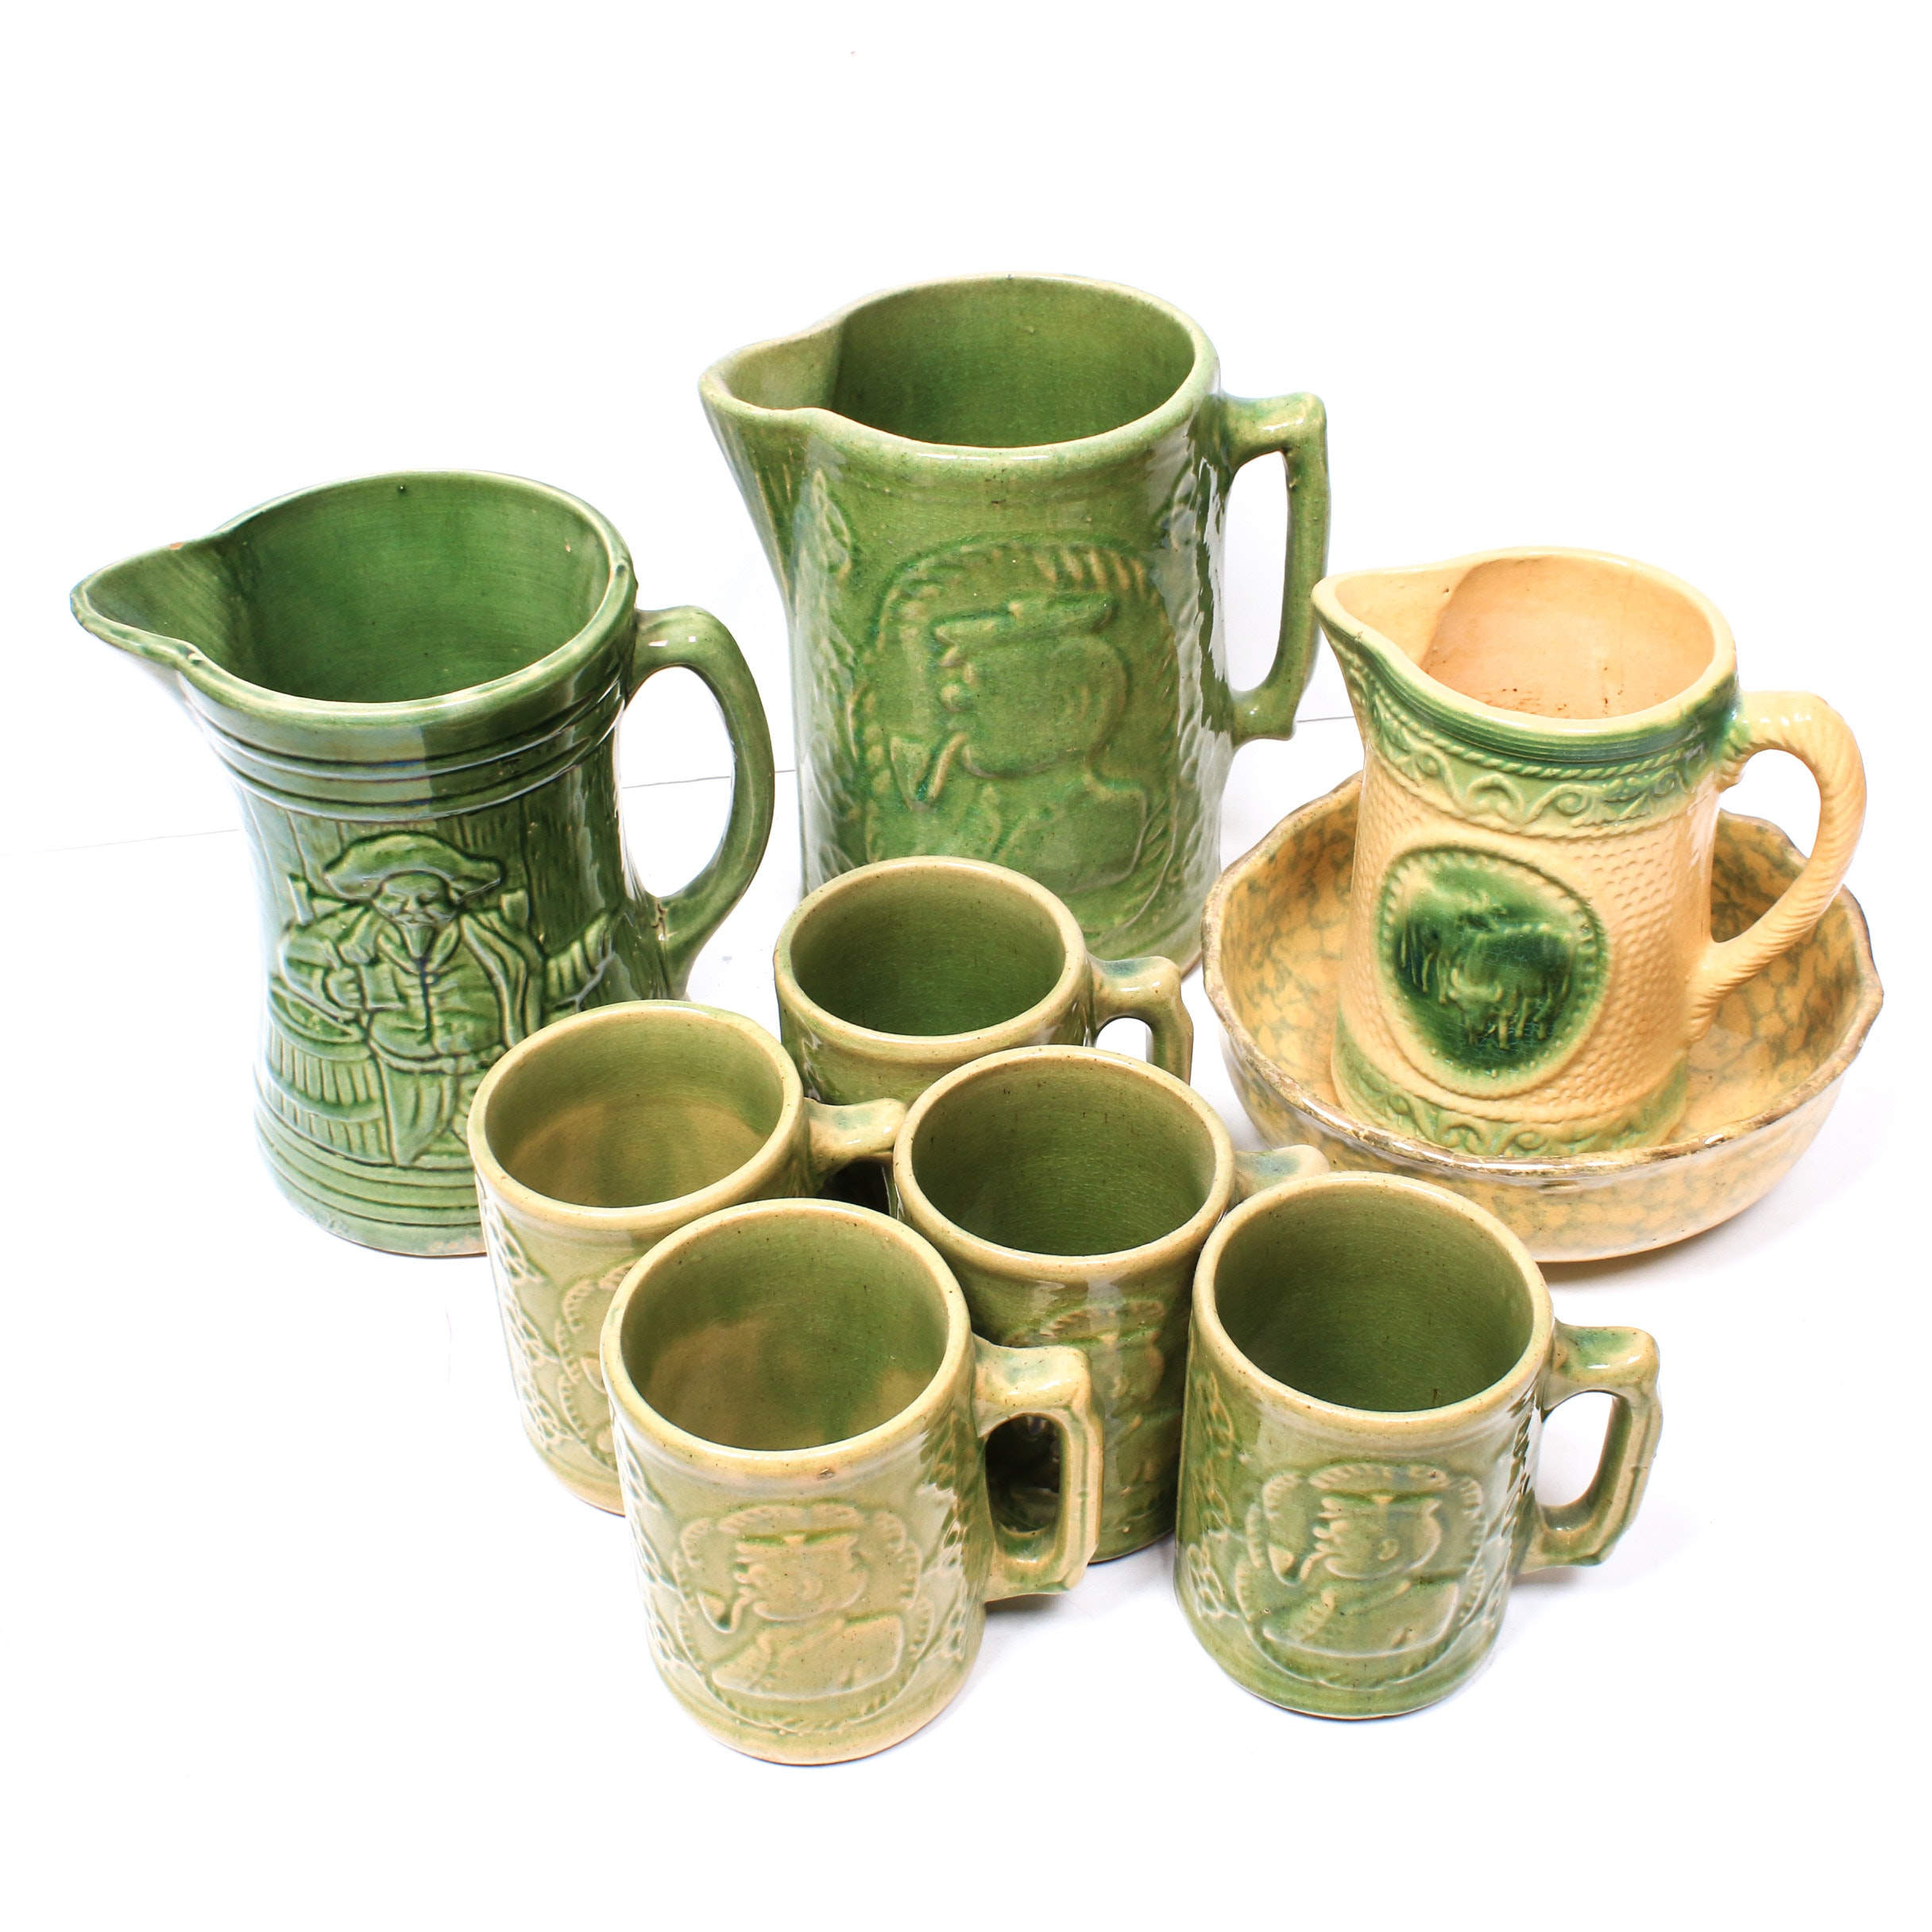 Burley  Winter Pottery Co. Pitchers and Mugs, Late 19th to Early 20th Century